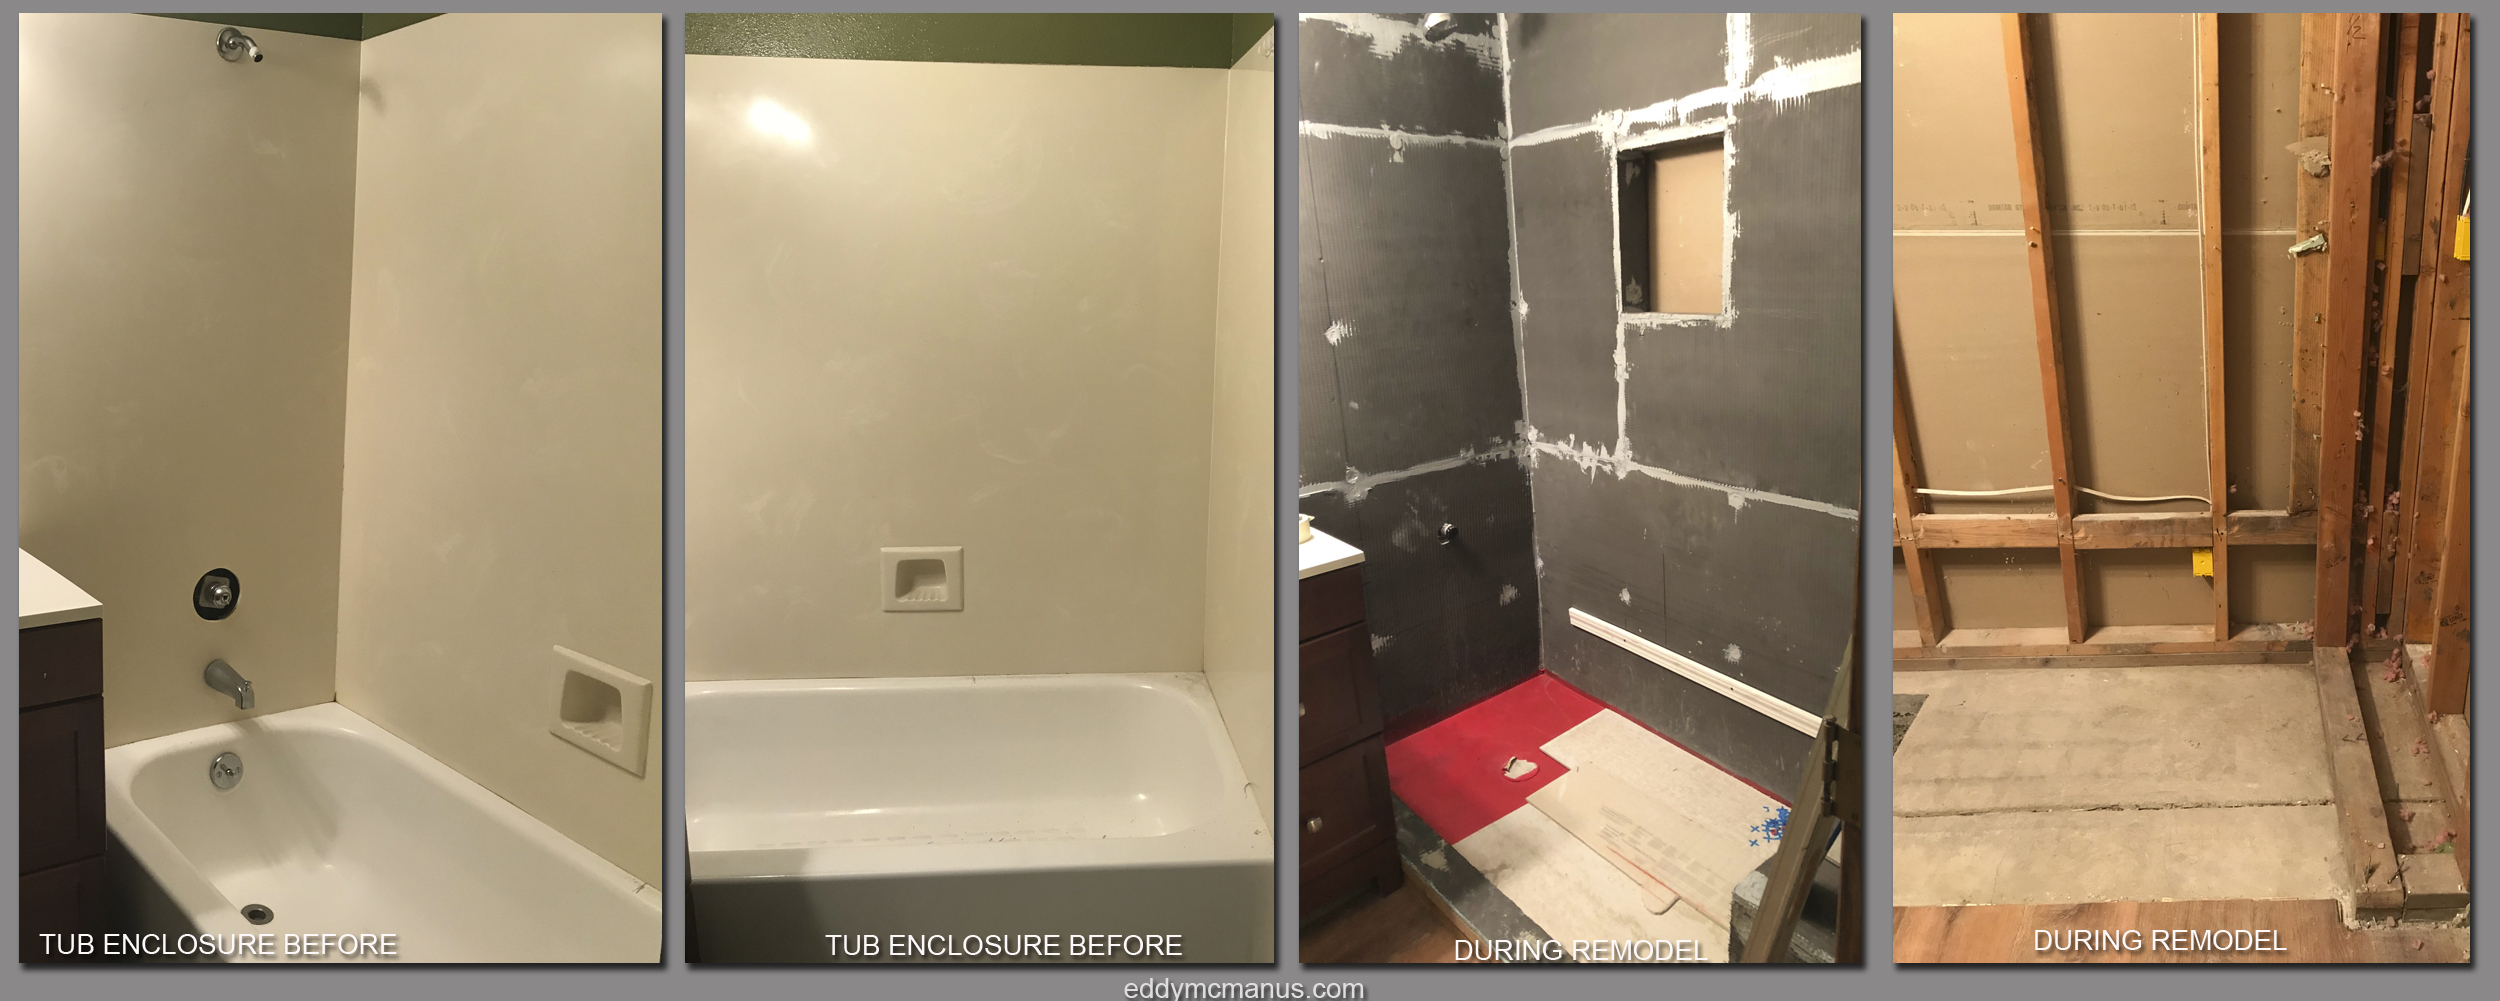 Before and During Images of Tub Enclosure